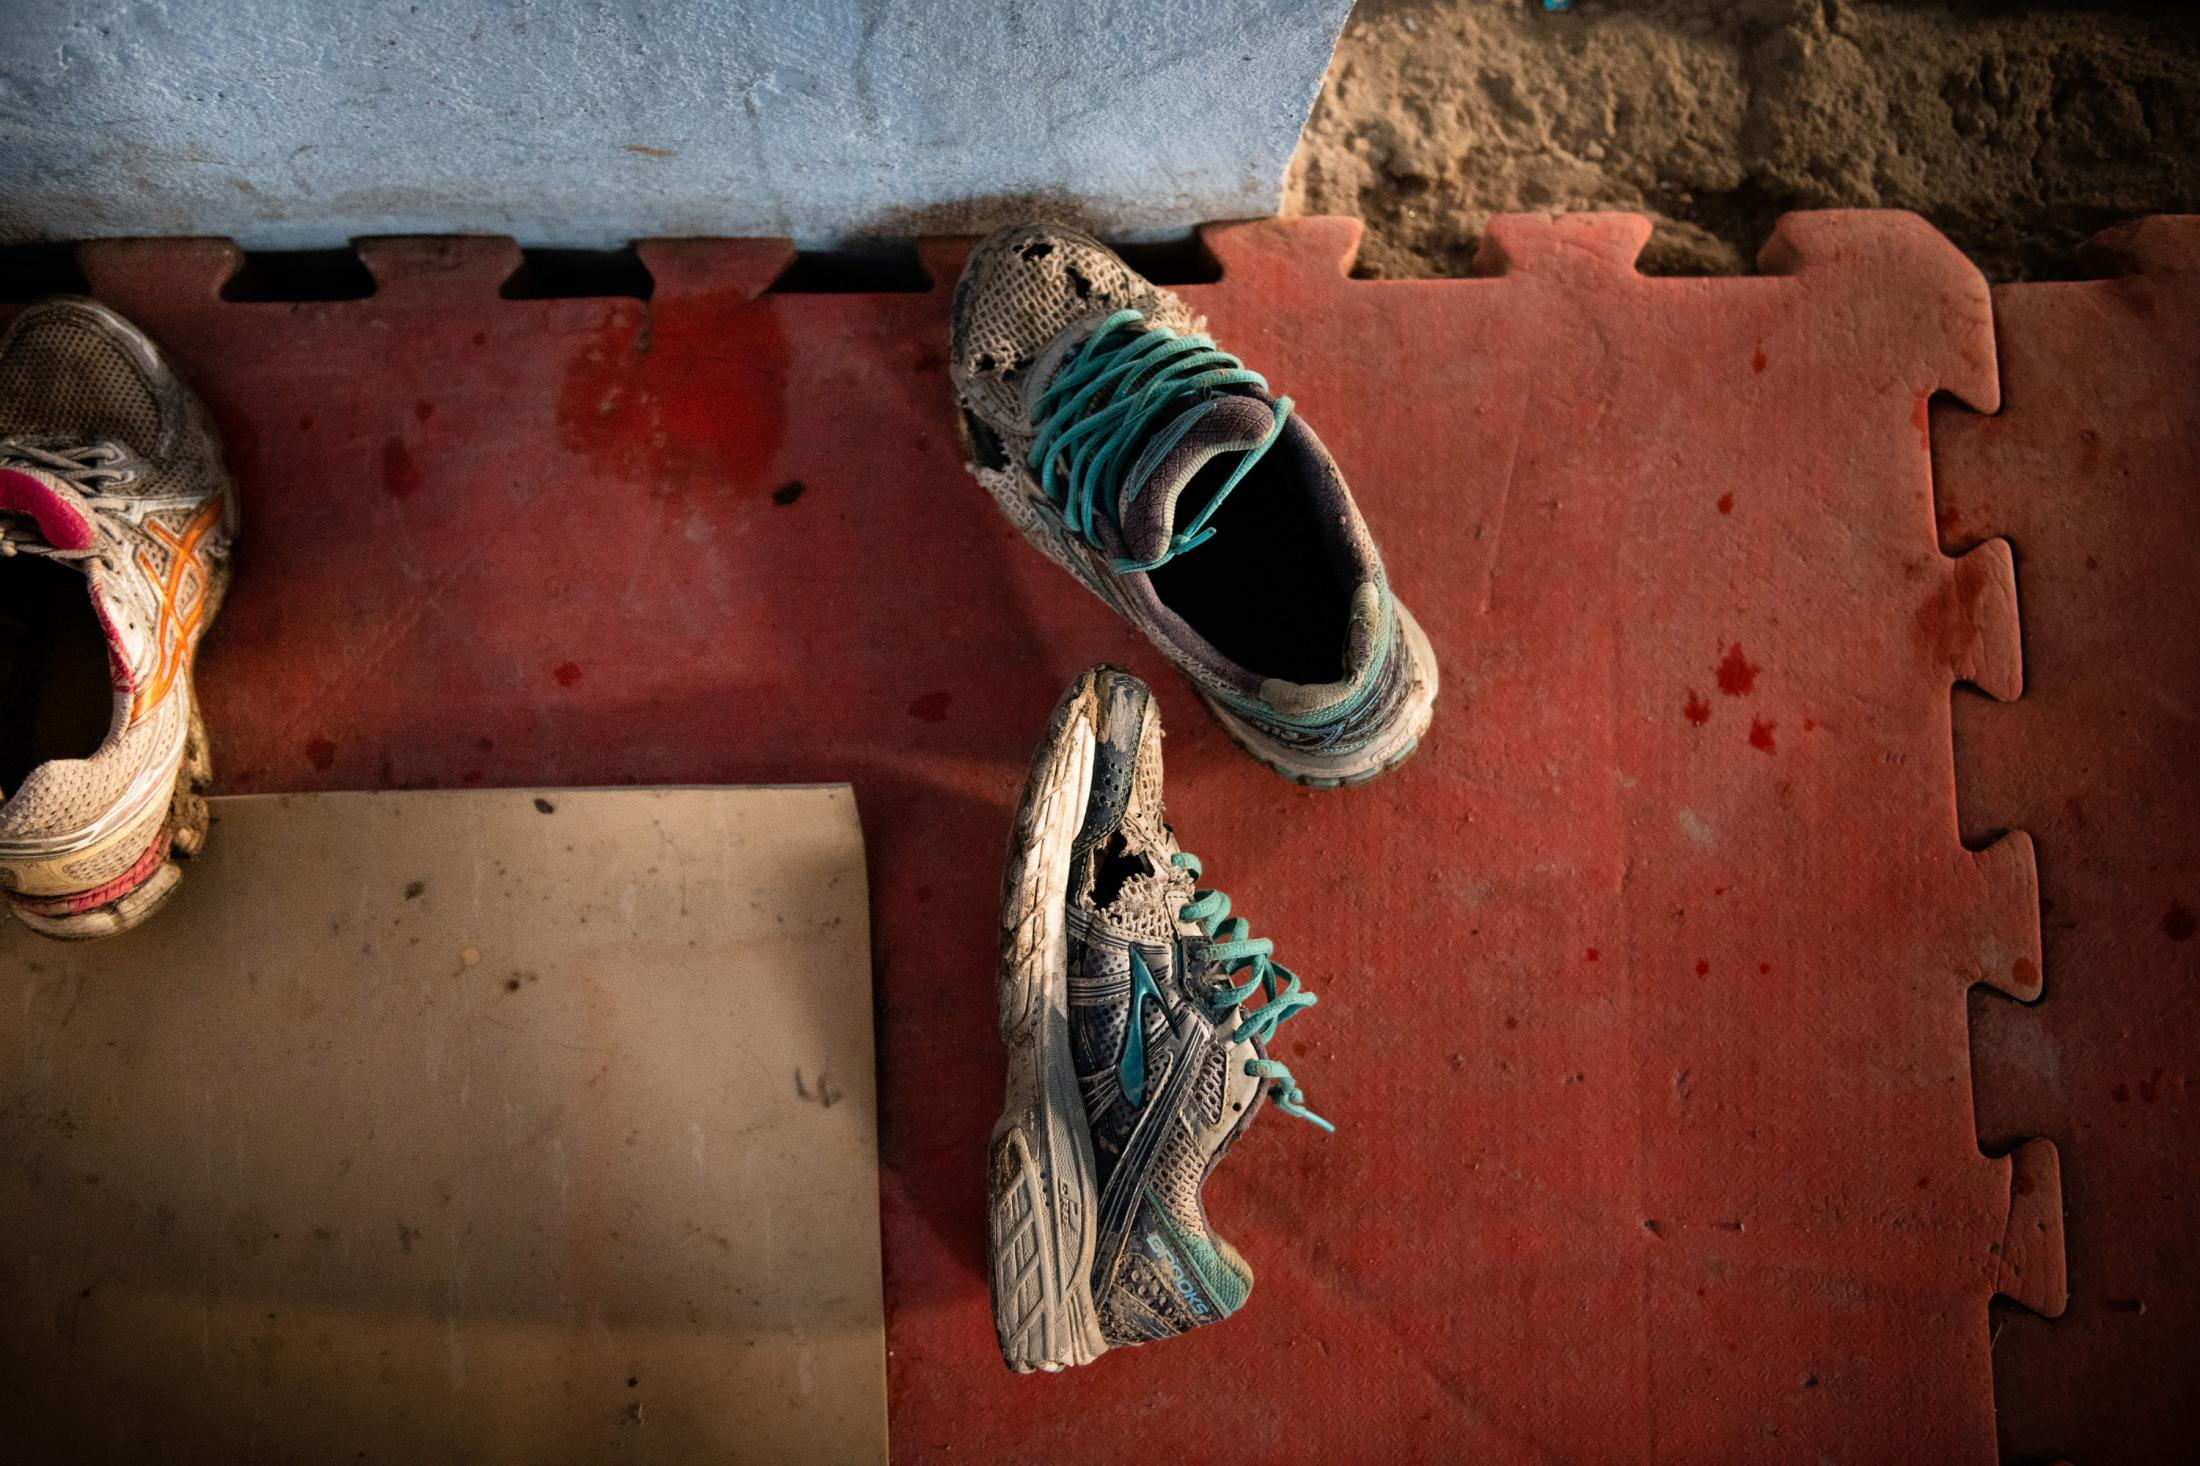 KABUL | AFGHANISTAN | 2/6/19 | Shoes belonging to one of the member of Maiwand Wrestling Club. On Sept. 5, an Islamic State suicide bomber looking for Shiites to kill, burst in and took the lives of as many as 30 people at the club. Despite the attack, everyday, over 100 members, as young as 9 year old, come together to practice inside Maiwand Club. Kiana Hayeri for The New York Times